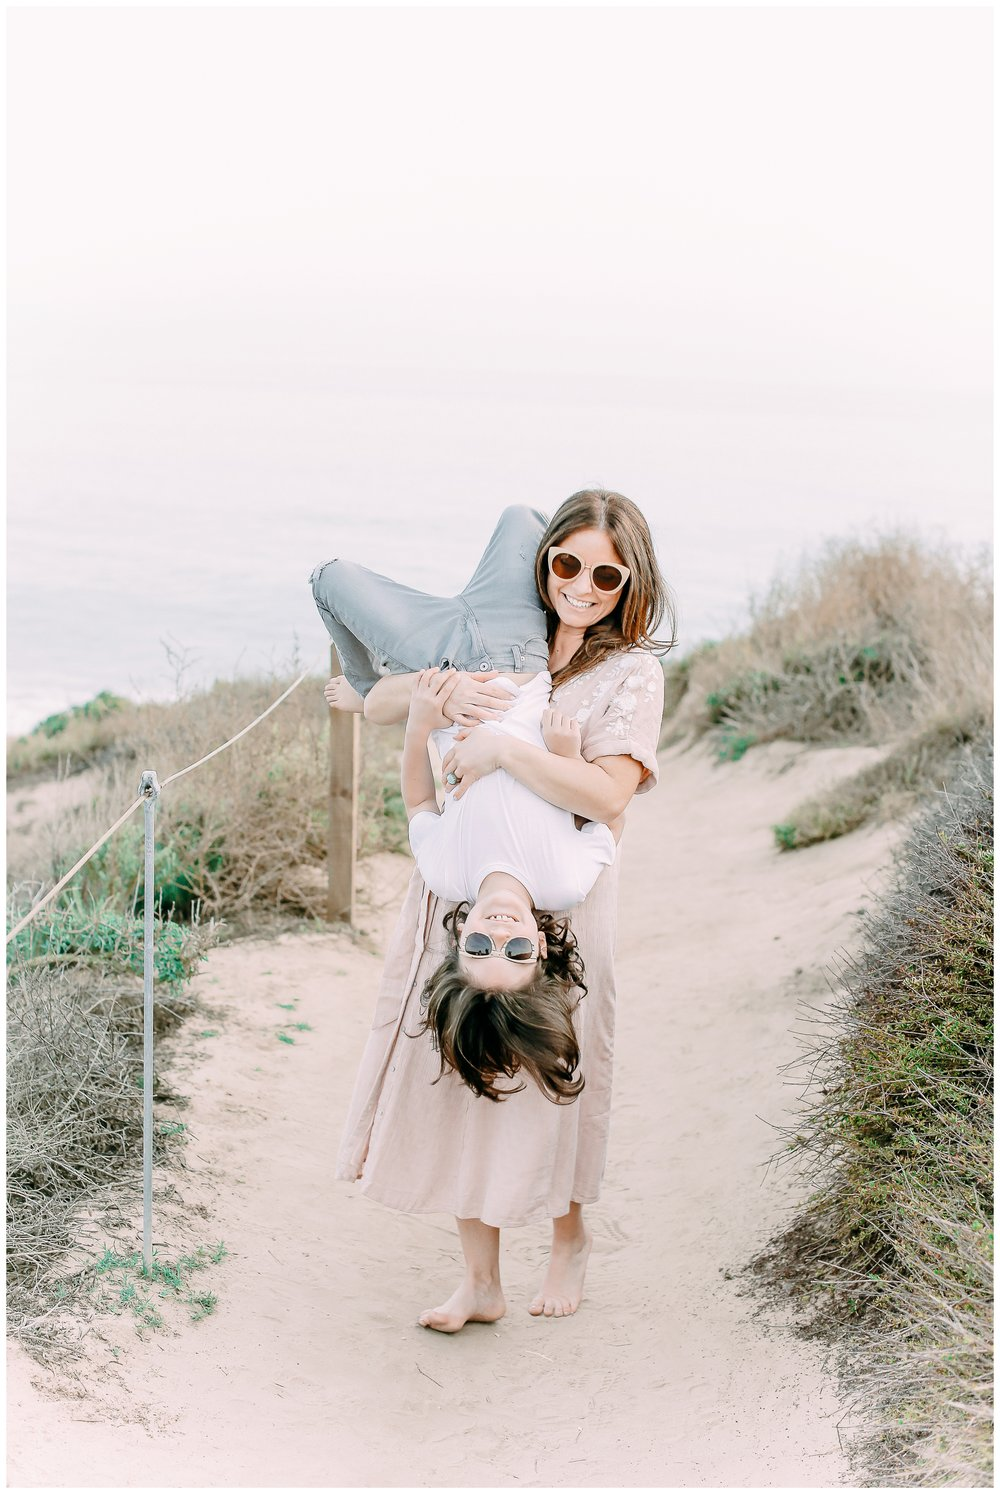 Crystal-Cove-State-Beach-Motherhood- Session-Crystal-Cove-Newport-Beach-Family-Photographer-Crystal-Cove-Minnow-Swim-Cori-Kleckner-Photography-Orange-County-Vacation-Family-Photos-Session-_0862.jpg